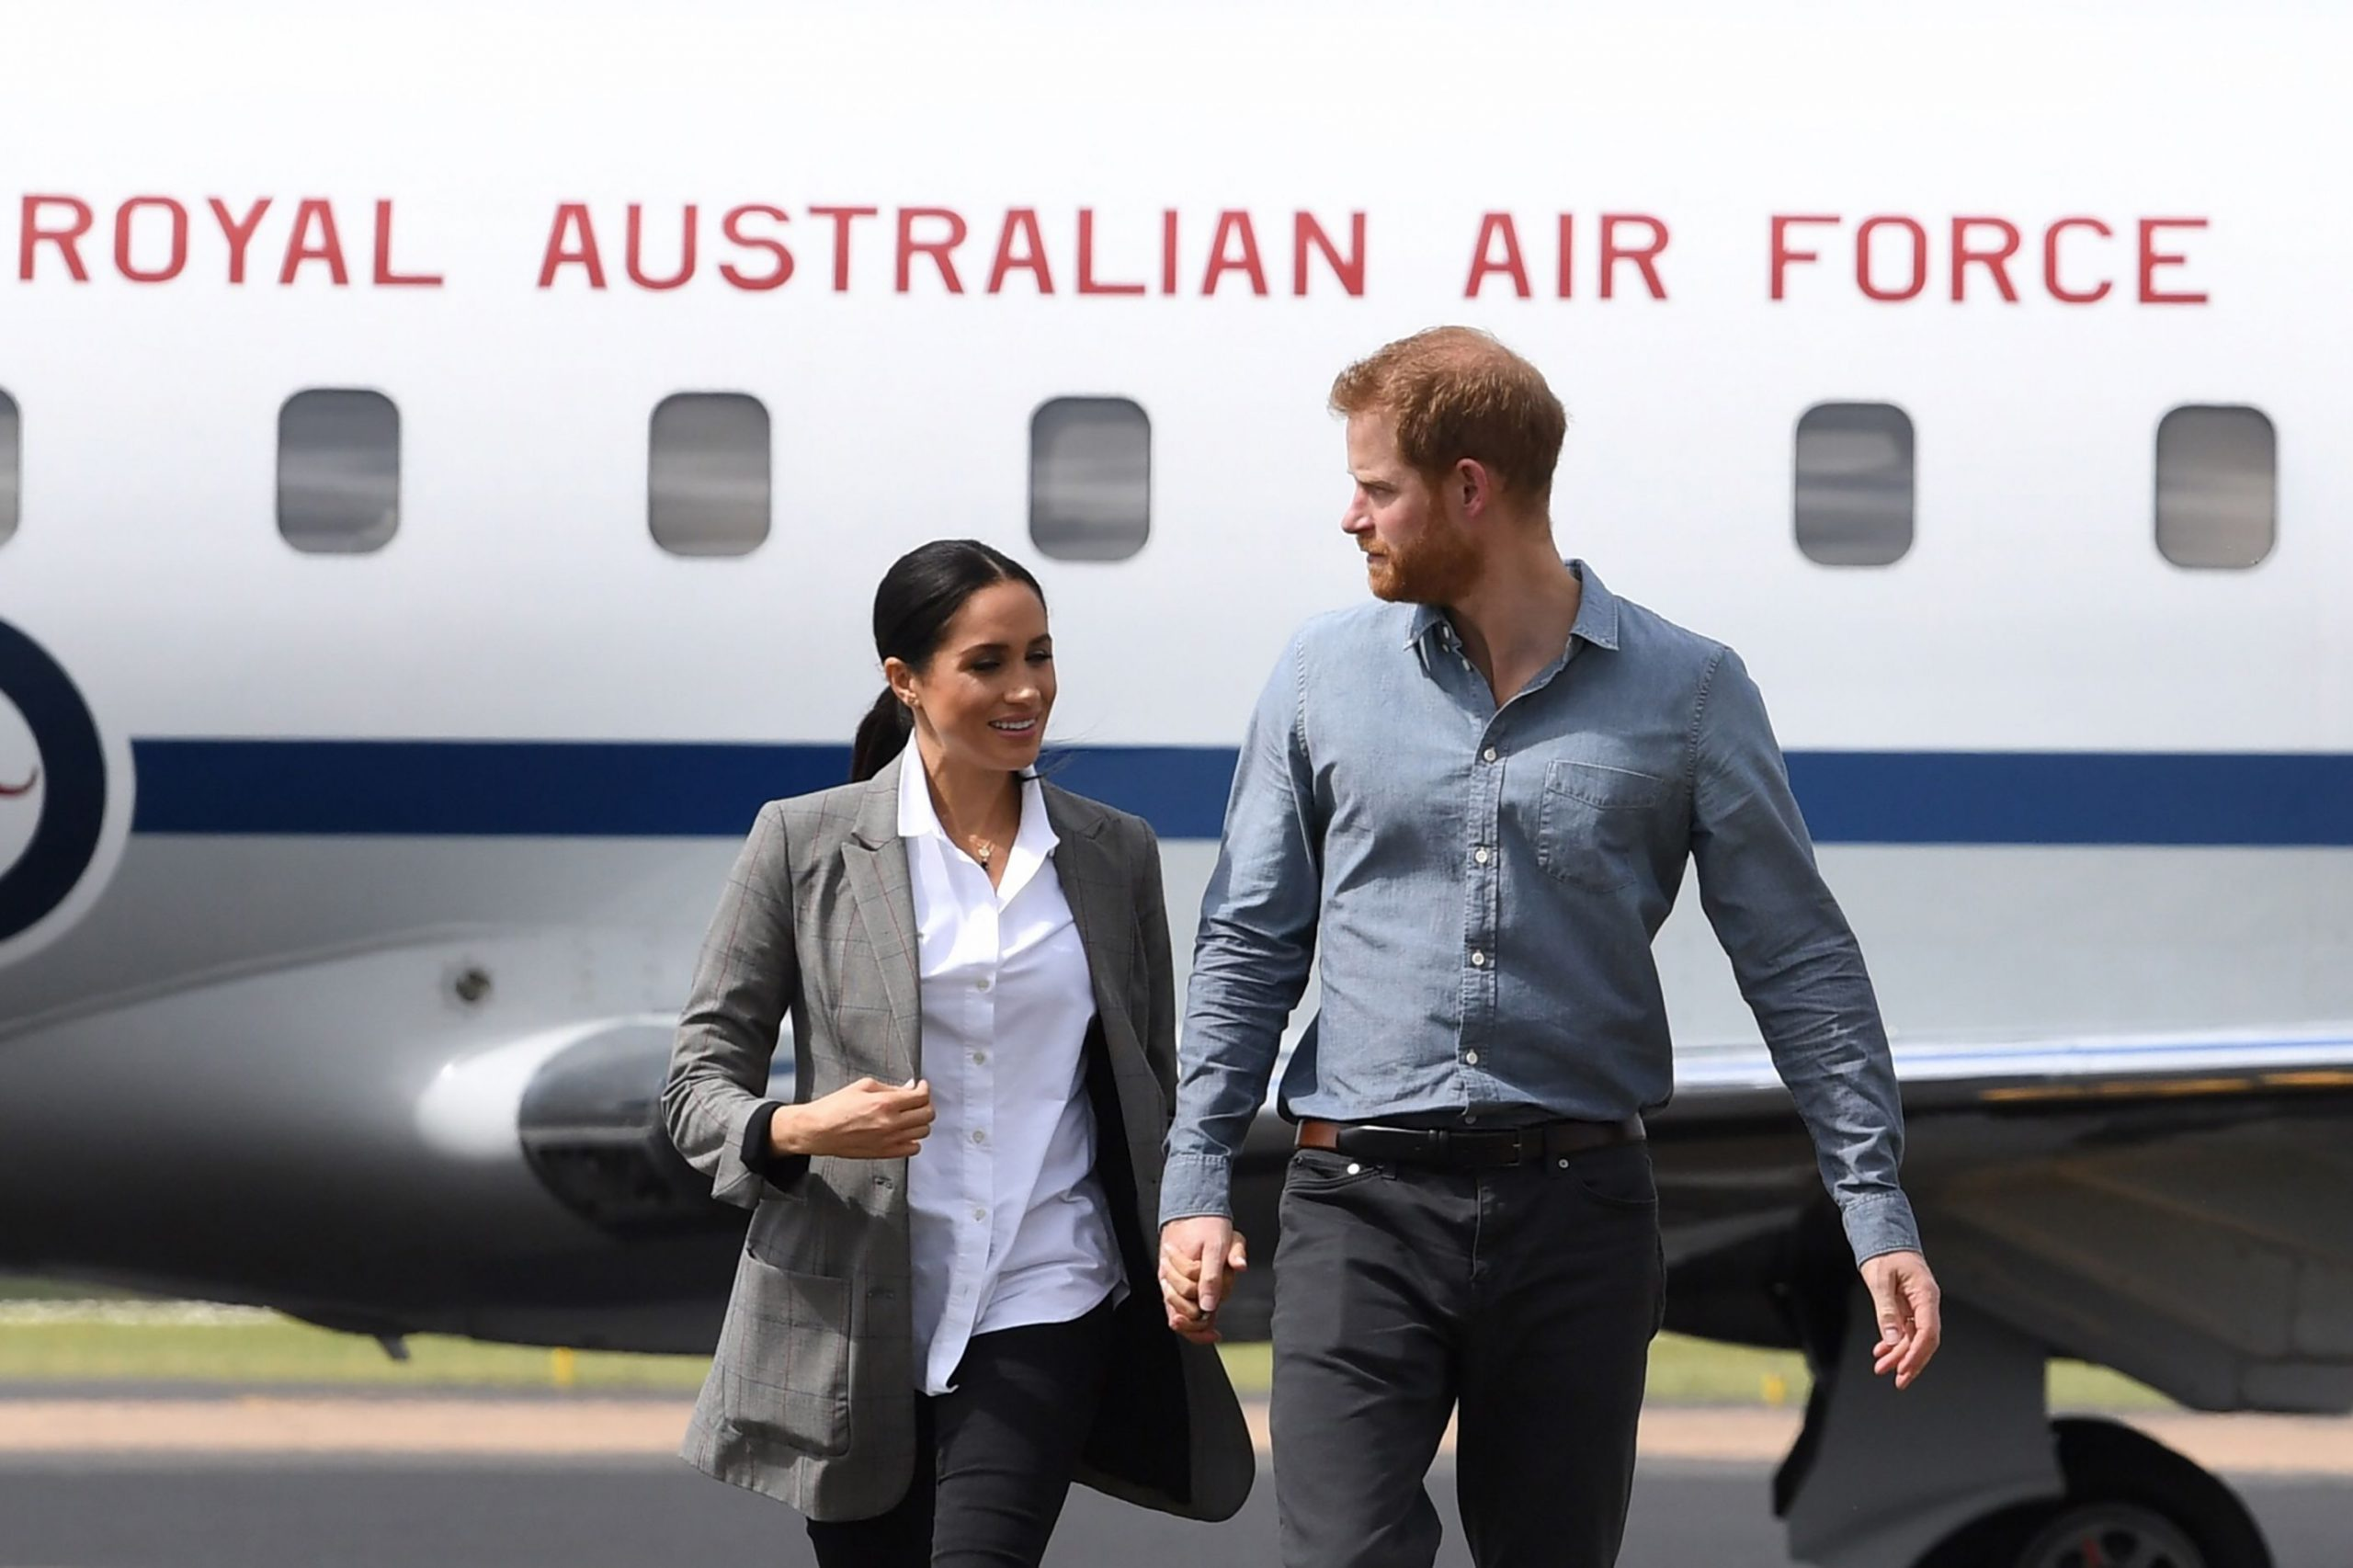 britains-prince-harry-and-his-wife-meghan-the-duchess-of-news-photo-1052335386-1566424640-1.jpg